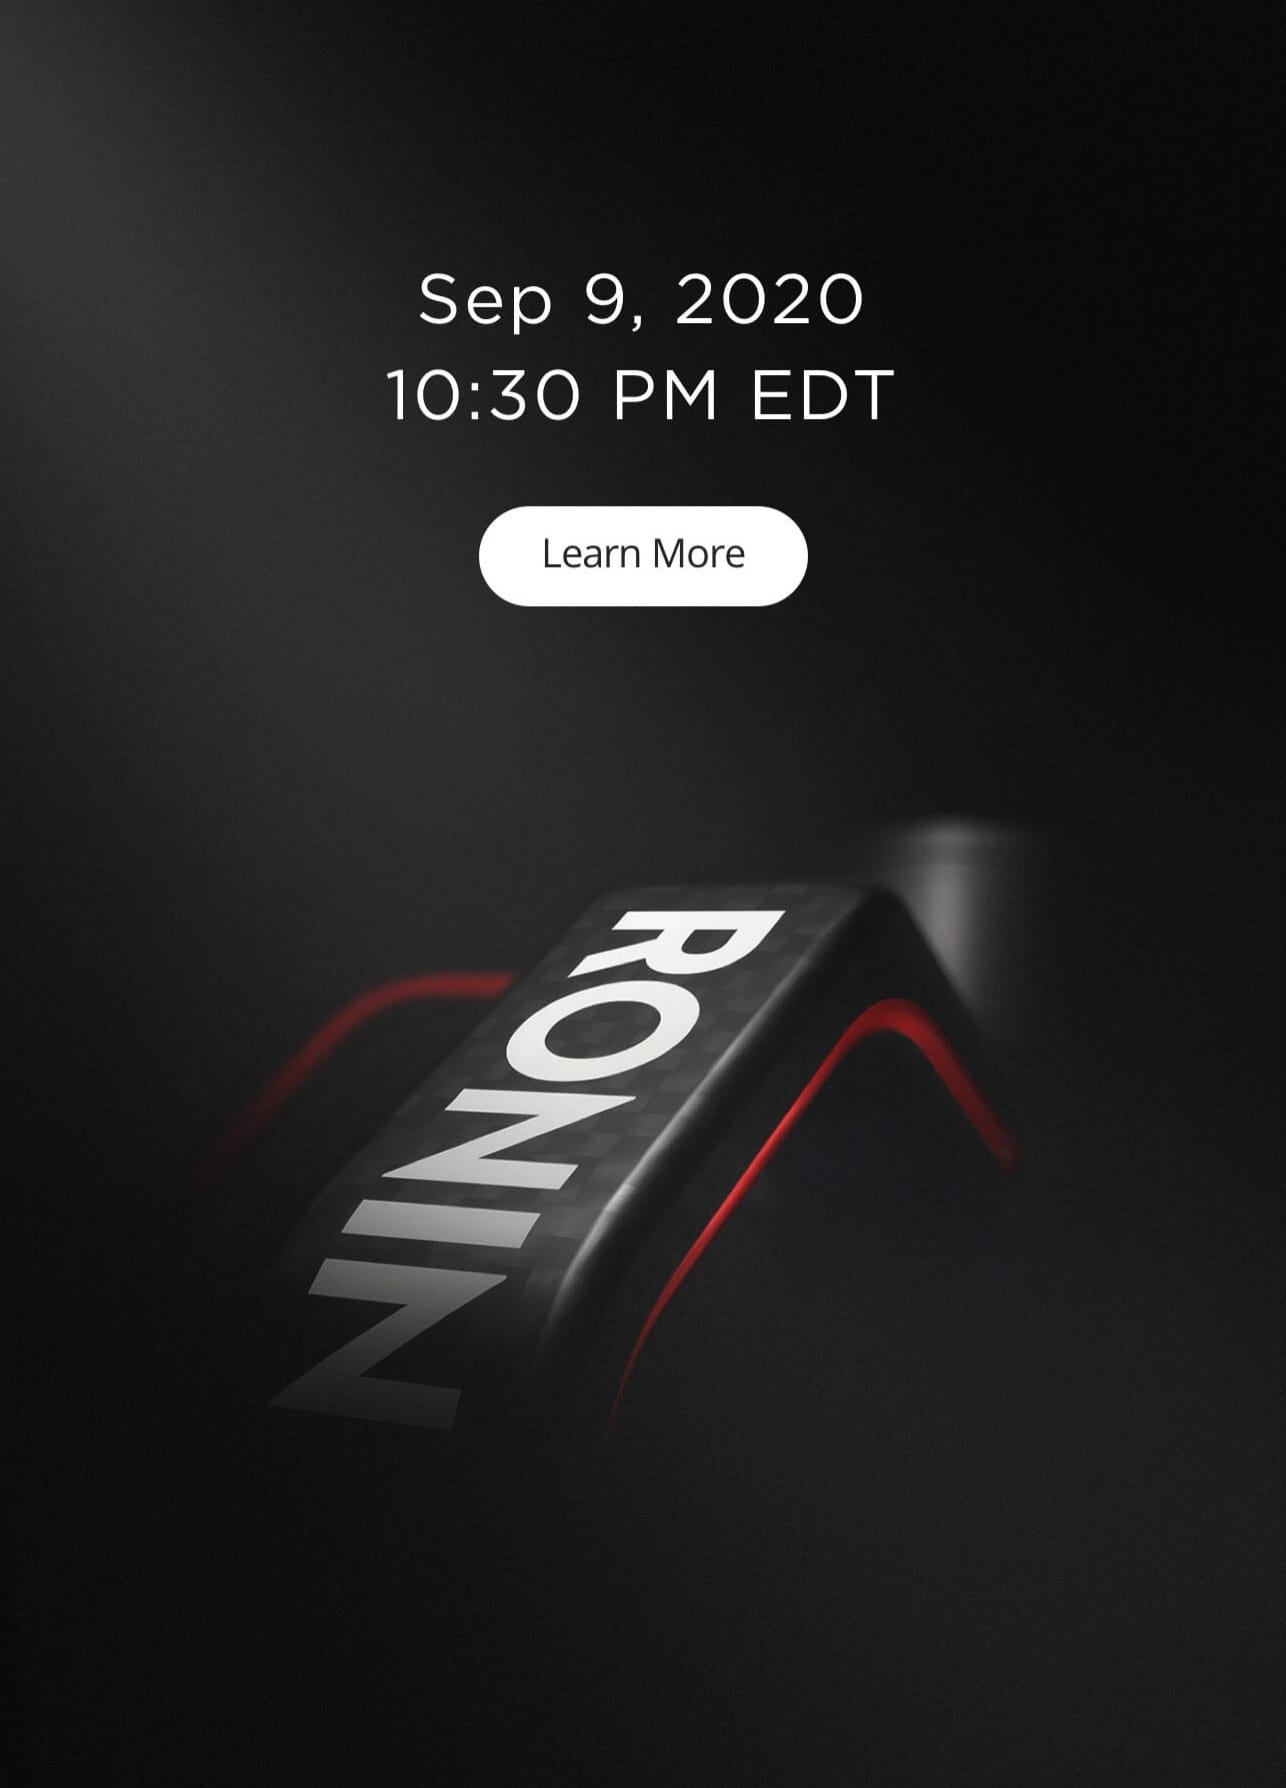 Ronin-RS2 release date is September 9th, 2020 at 10:30 p.m. EDT says DJI